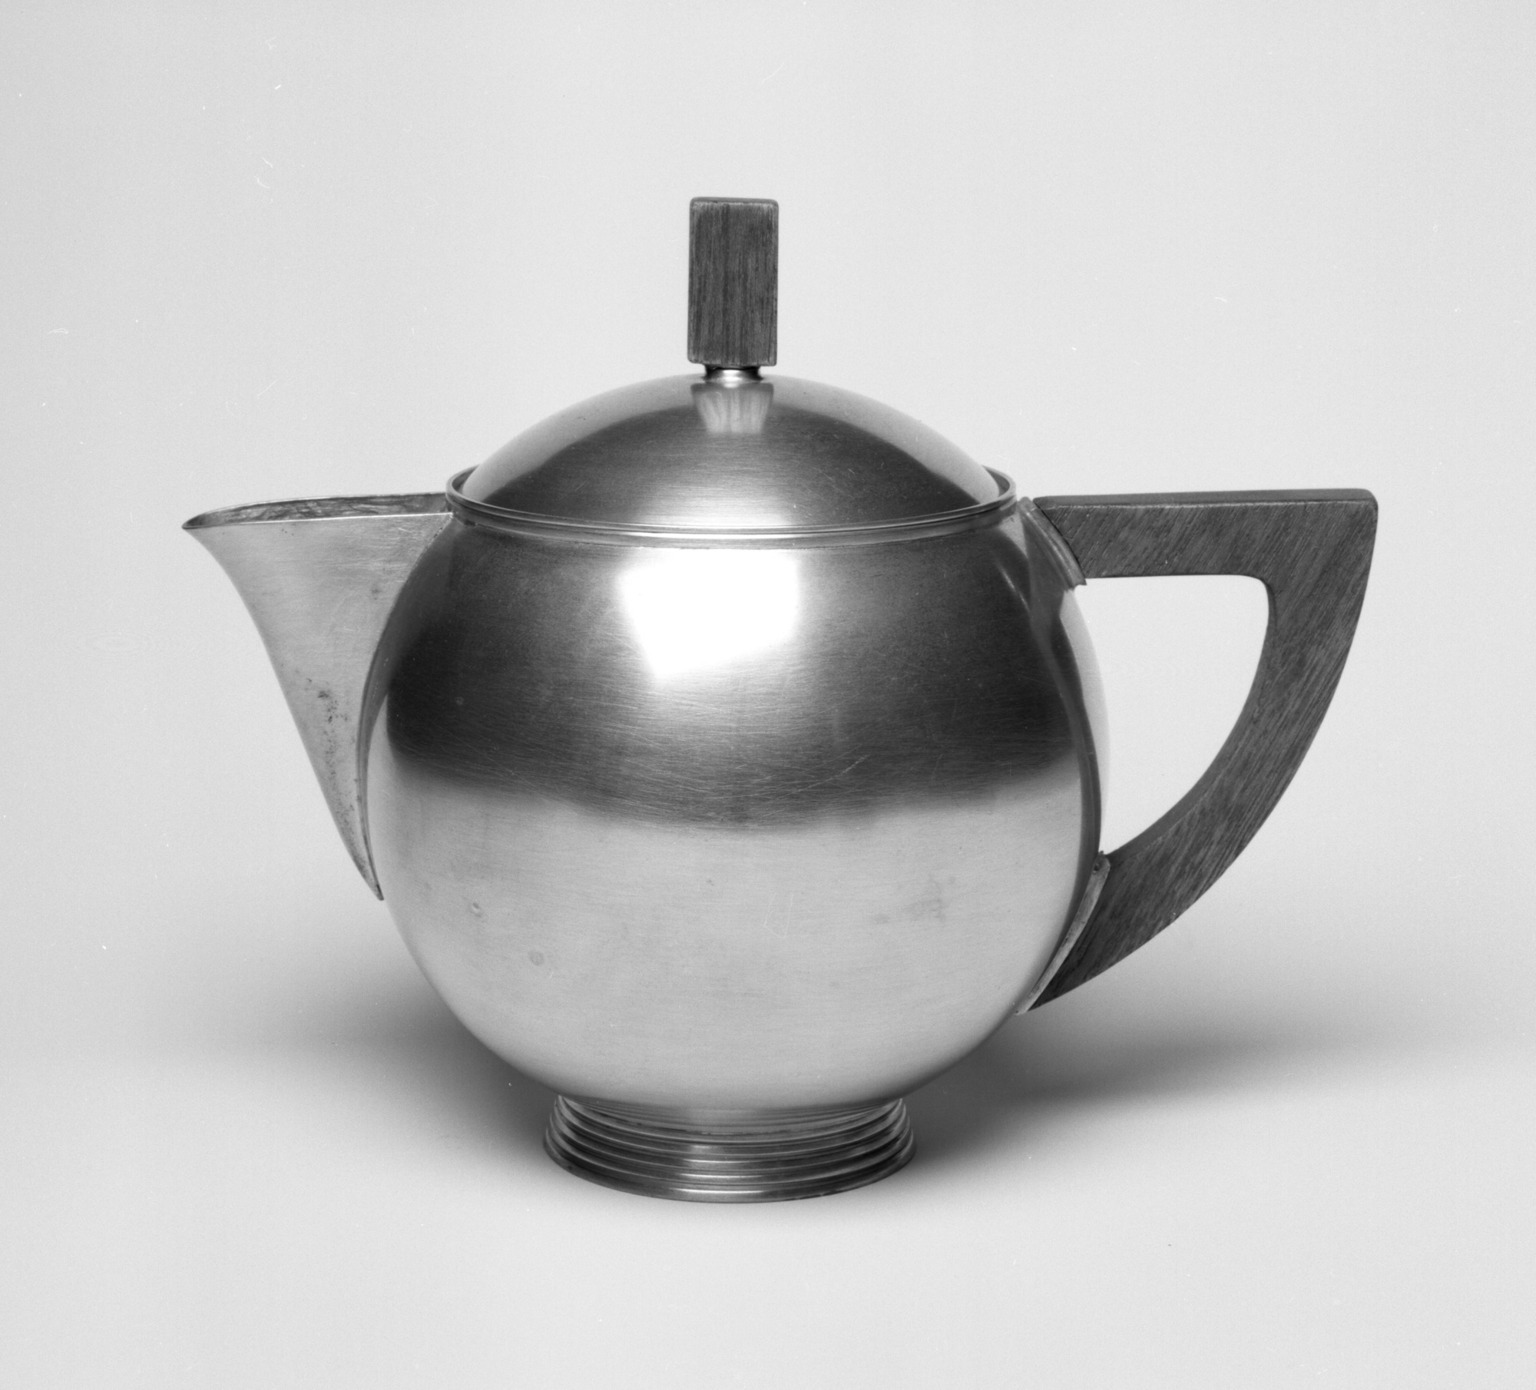 Brooklyn Museum: Teapot with Lid